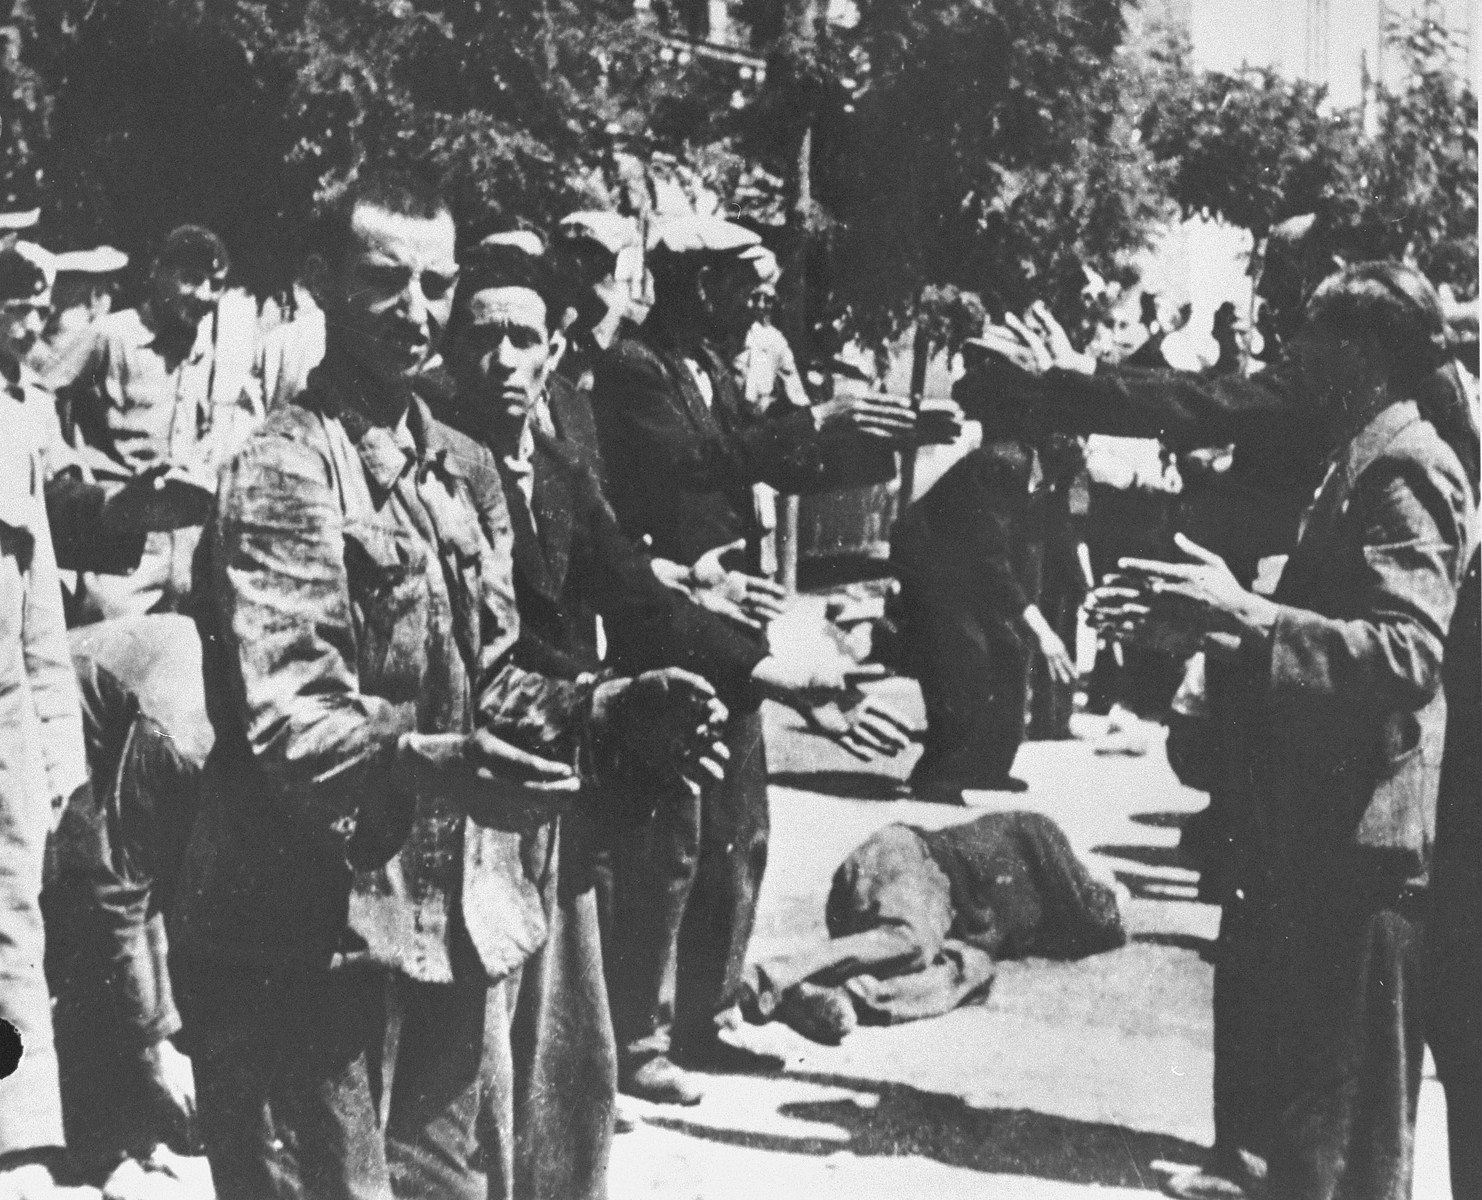 German soldiers force Jewish men to perform calisthenics on Eleftheria (Freedom) Square in Salonika.  The man in the background has collapsed from exhaustion.